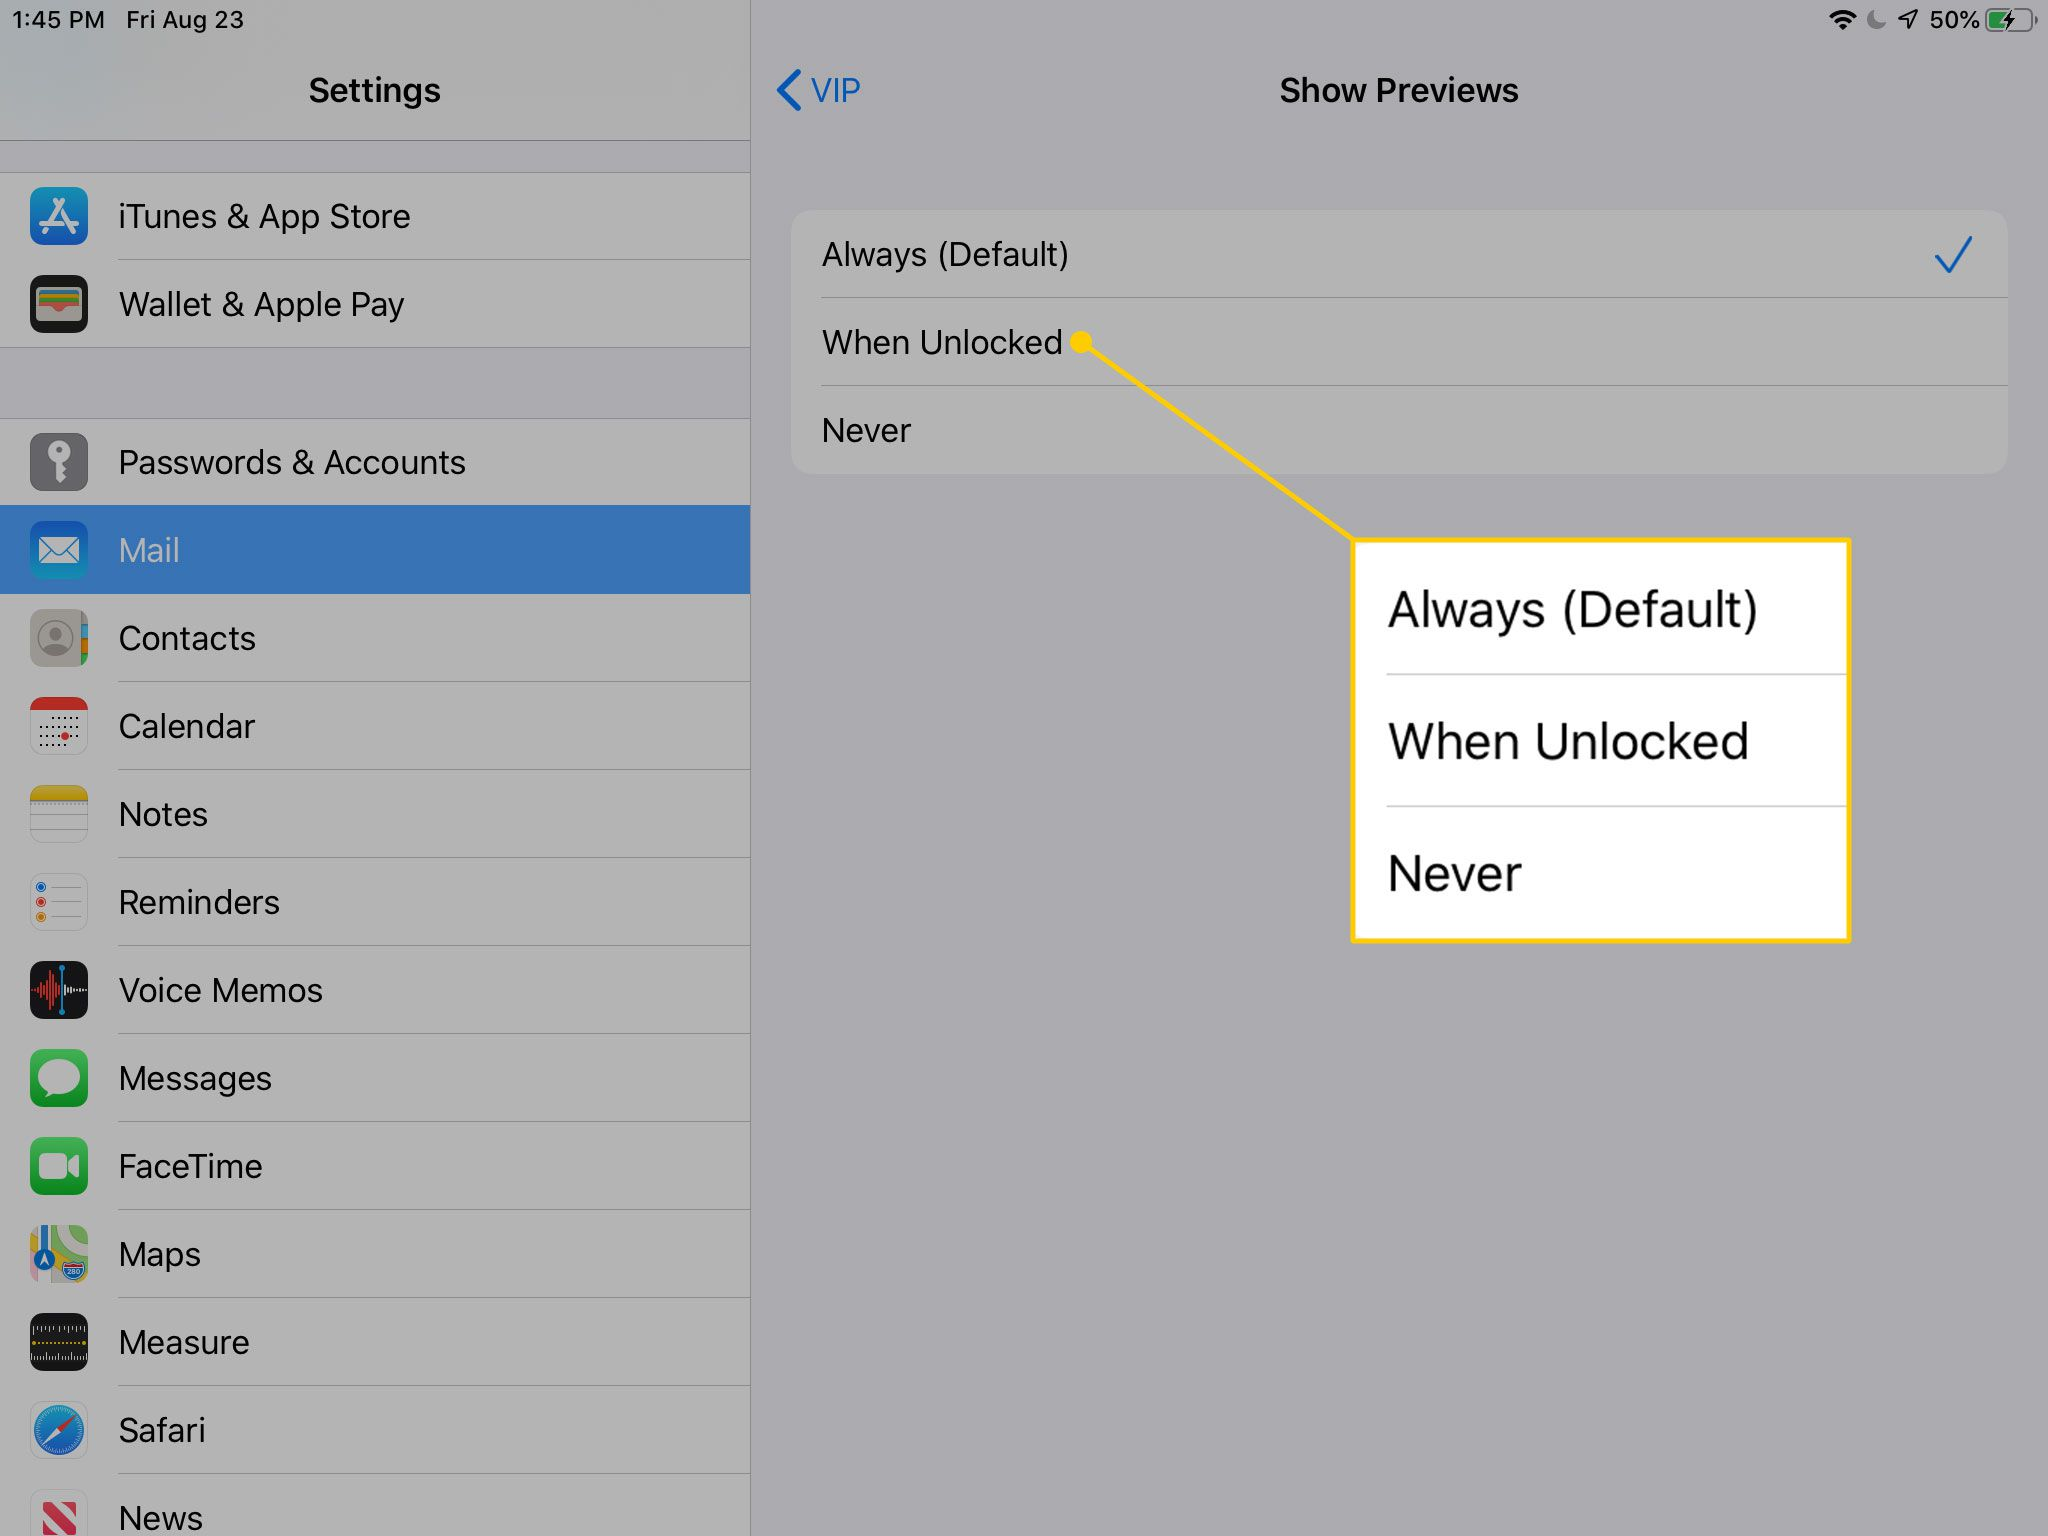 Notifications preview settings in iOS